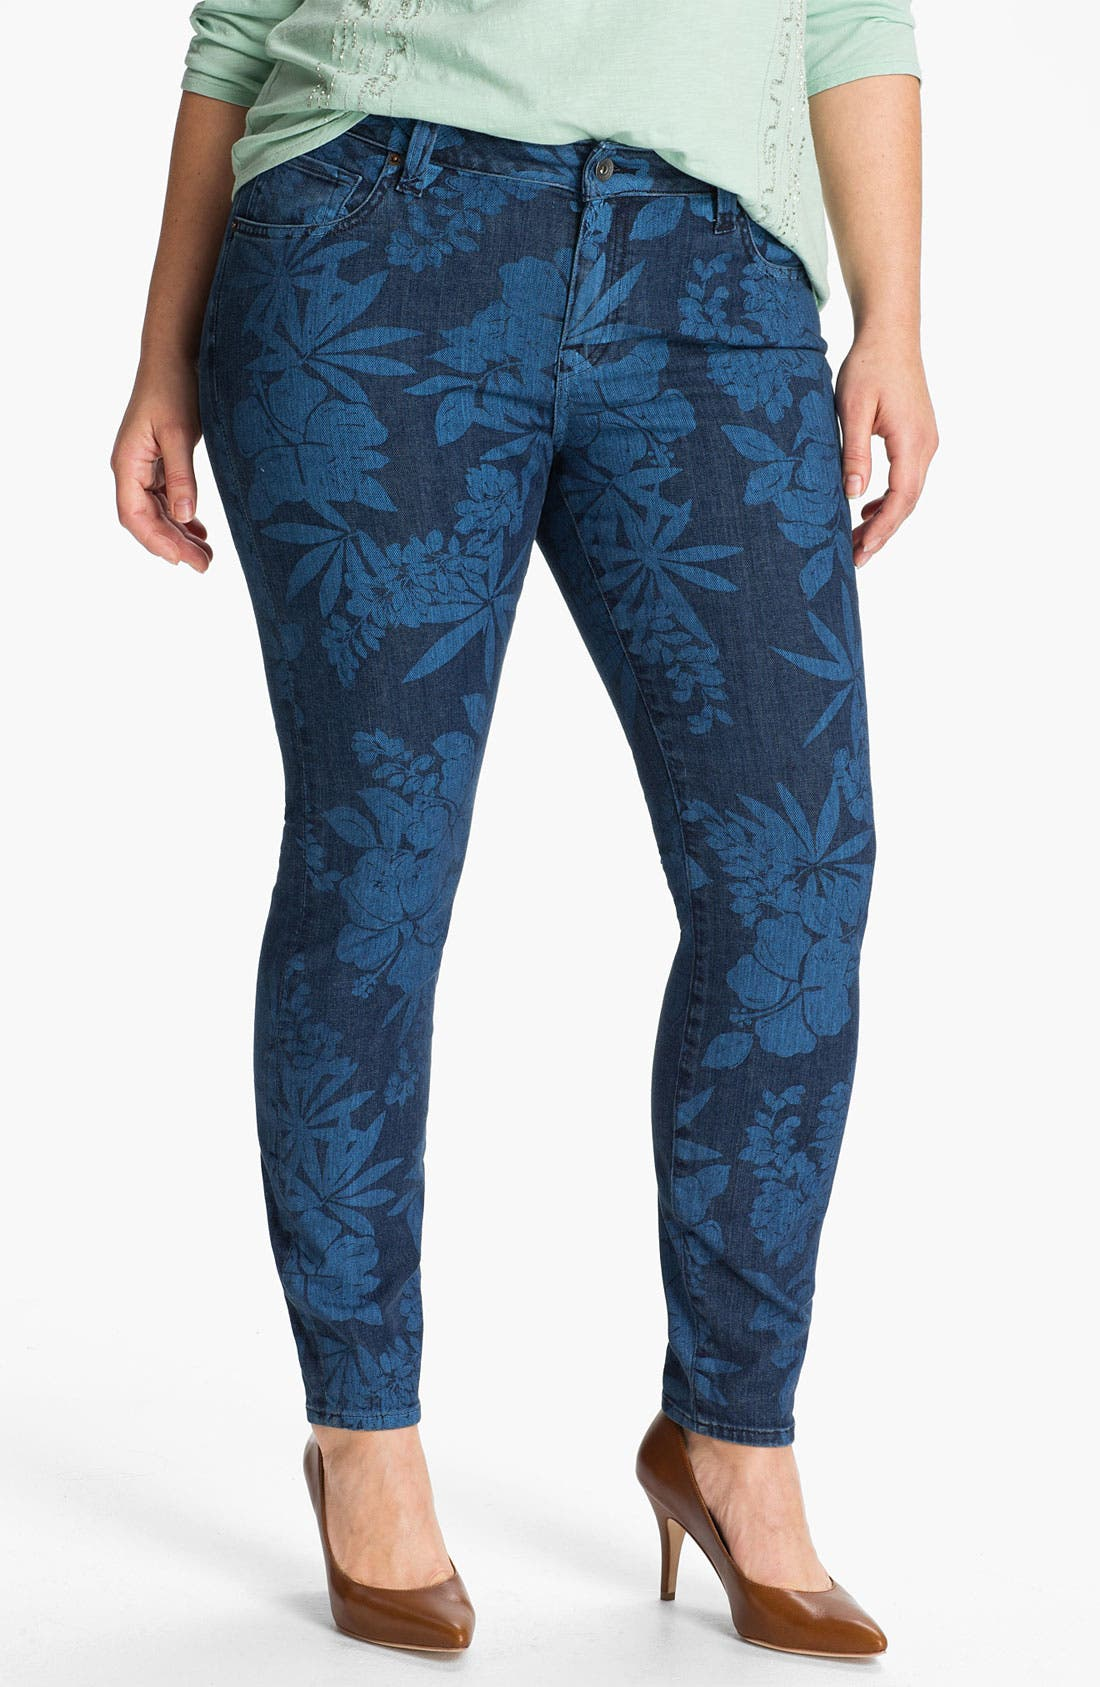 Alternate Image 1 Selected - Lucky Brand 'Ginger' Print Skinny Jeans (Plus)